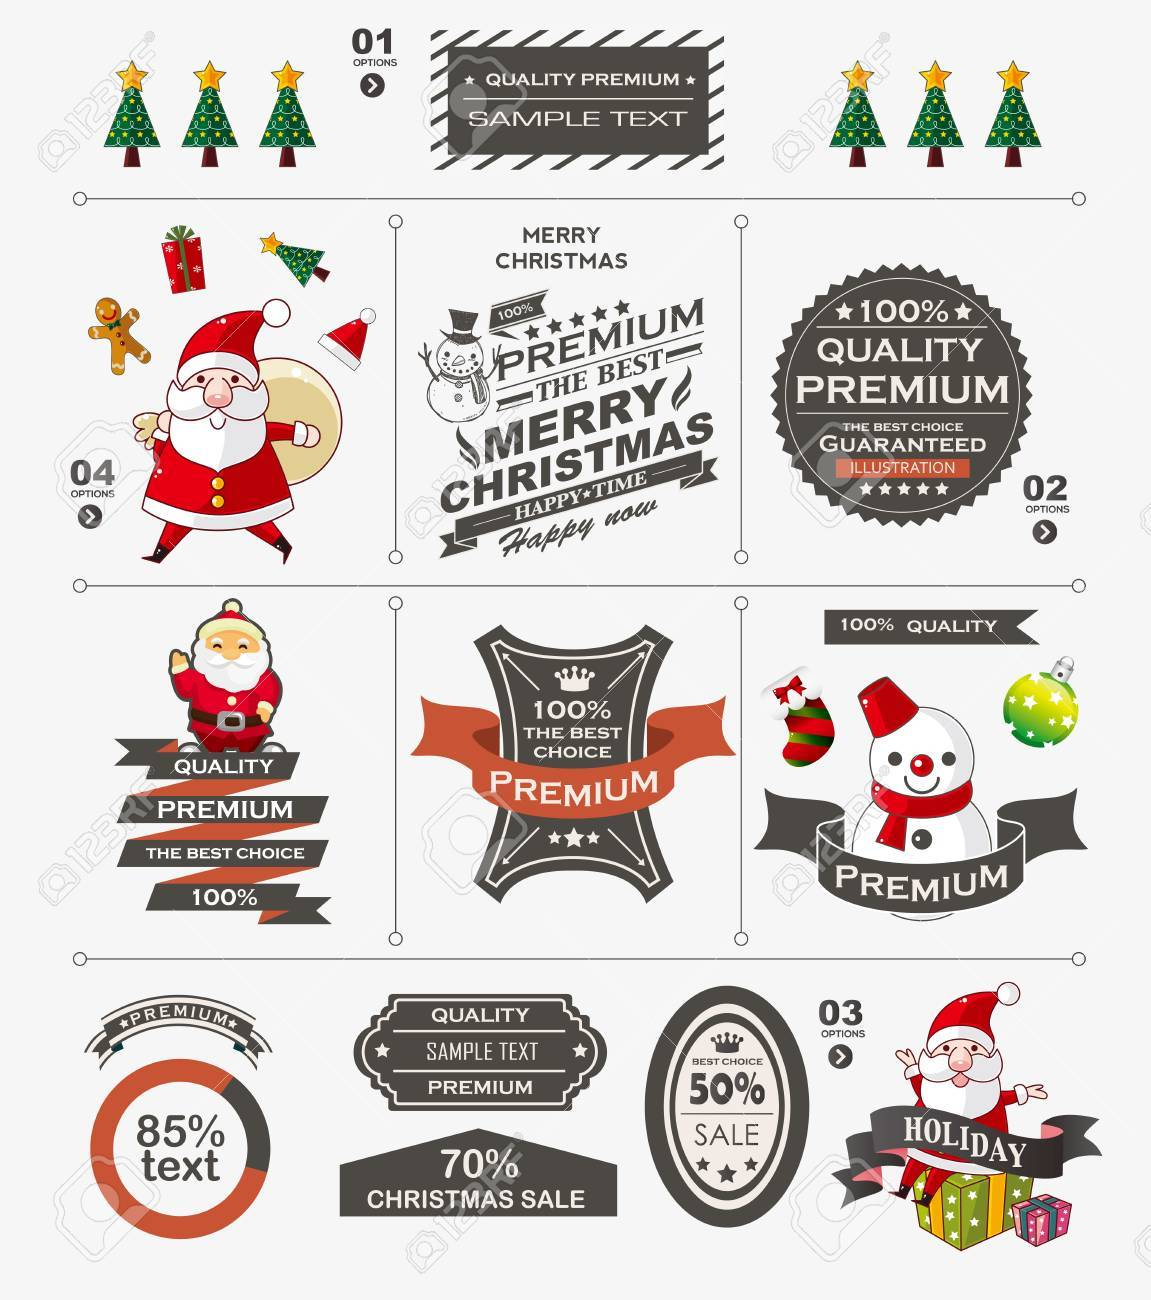 Christmas vintage banner Stock Vector - 22772265